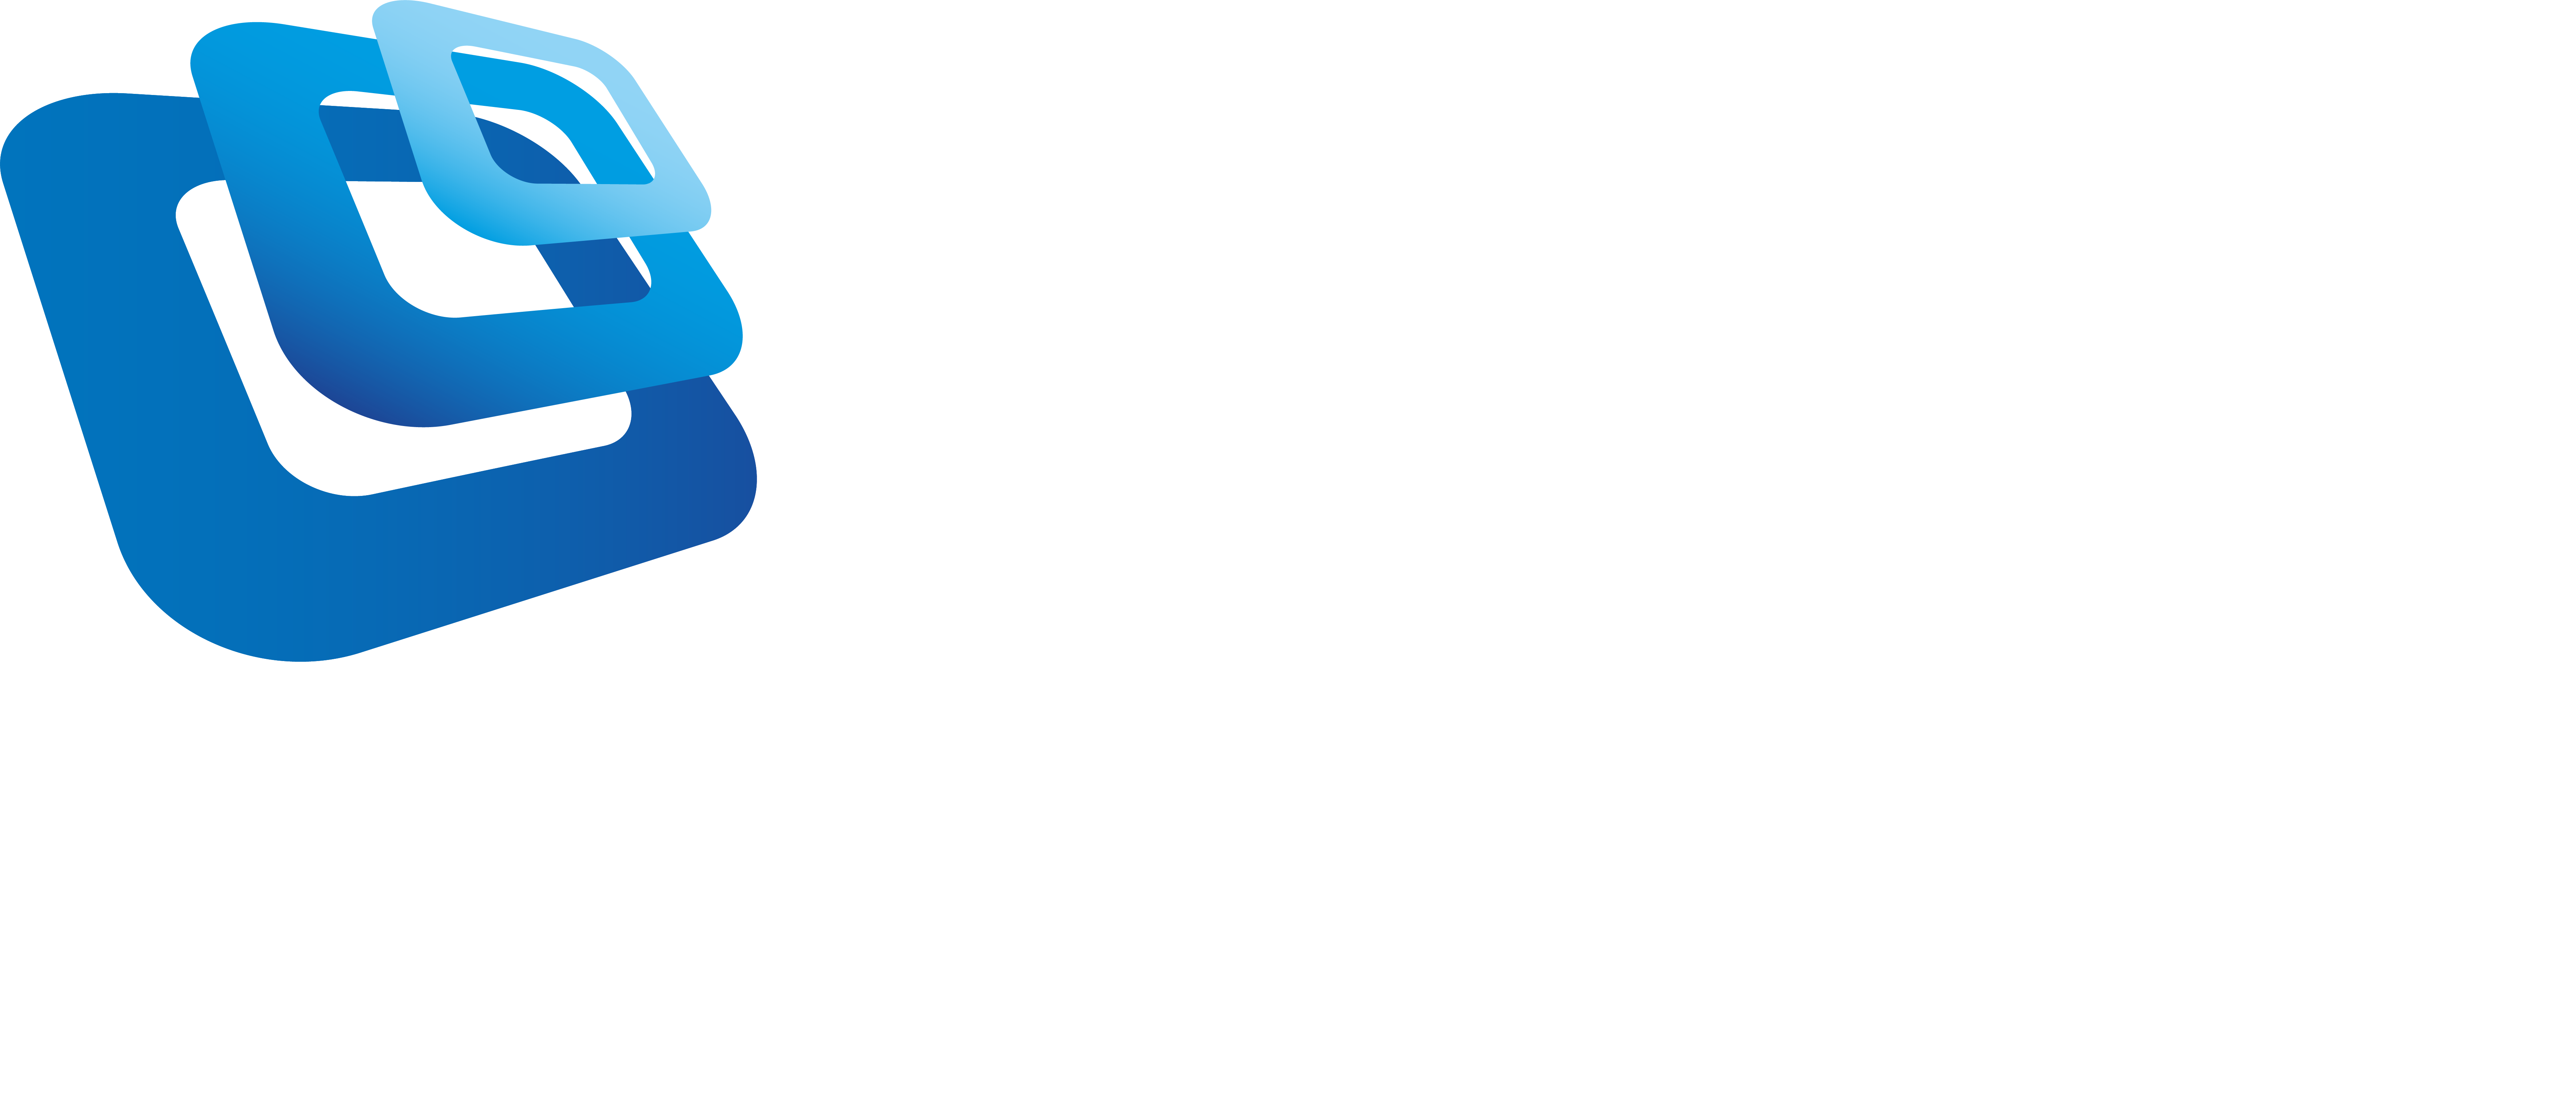 Cases RealtyCorp